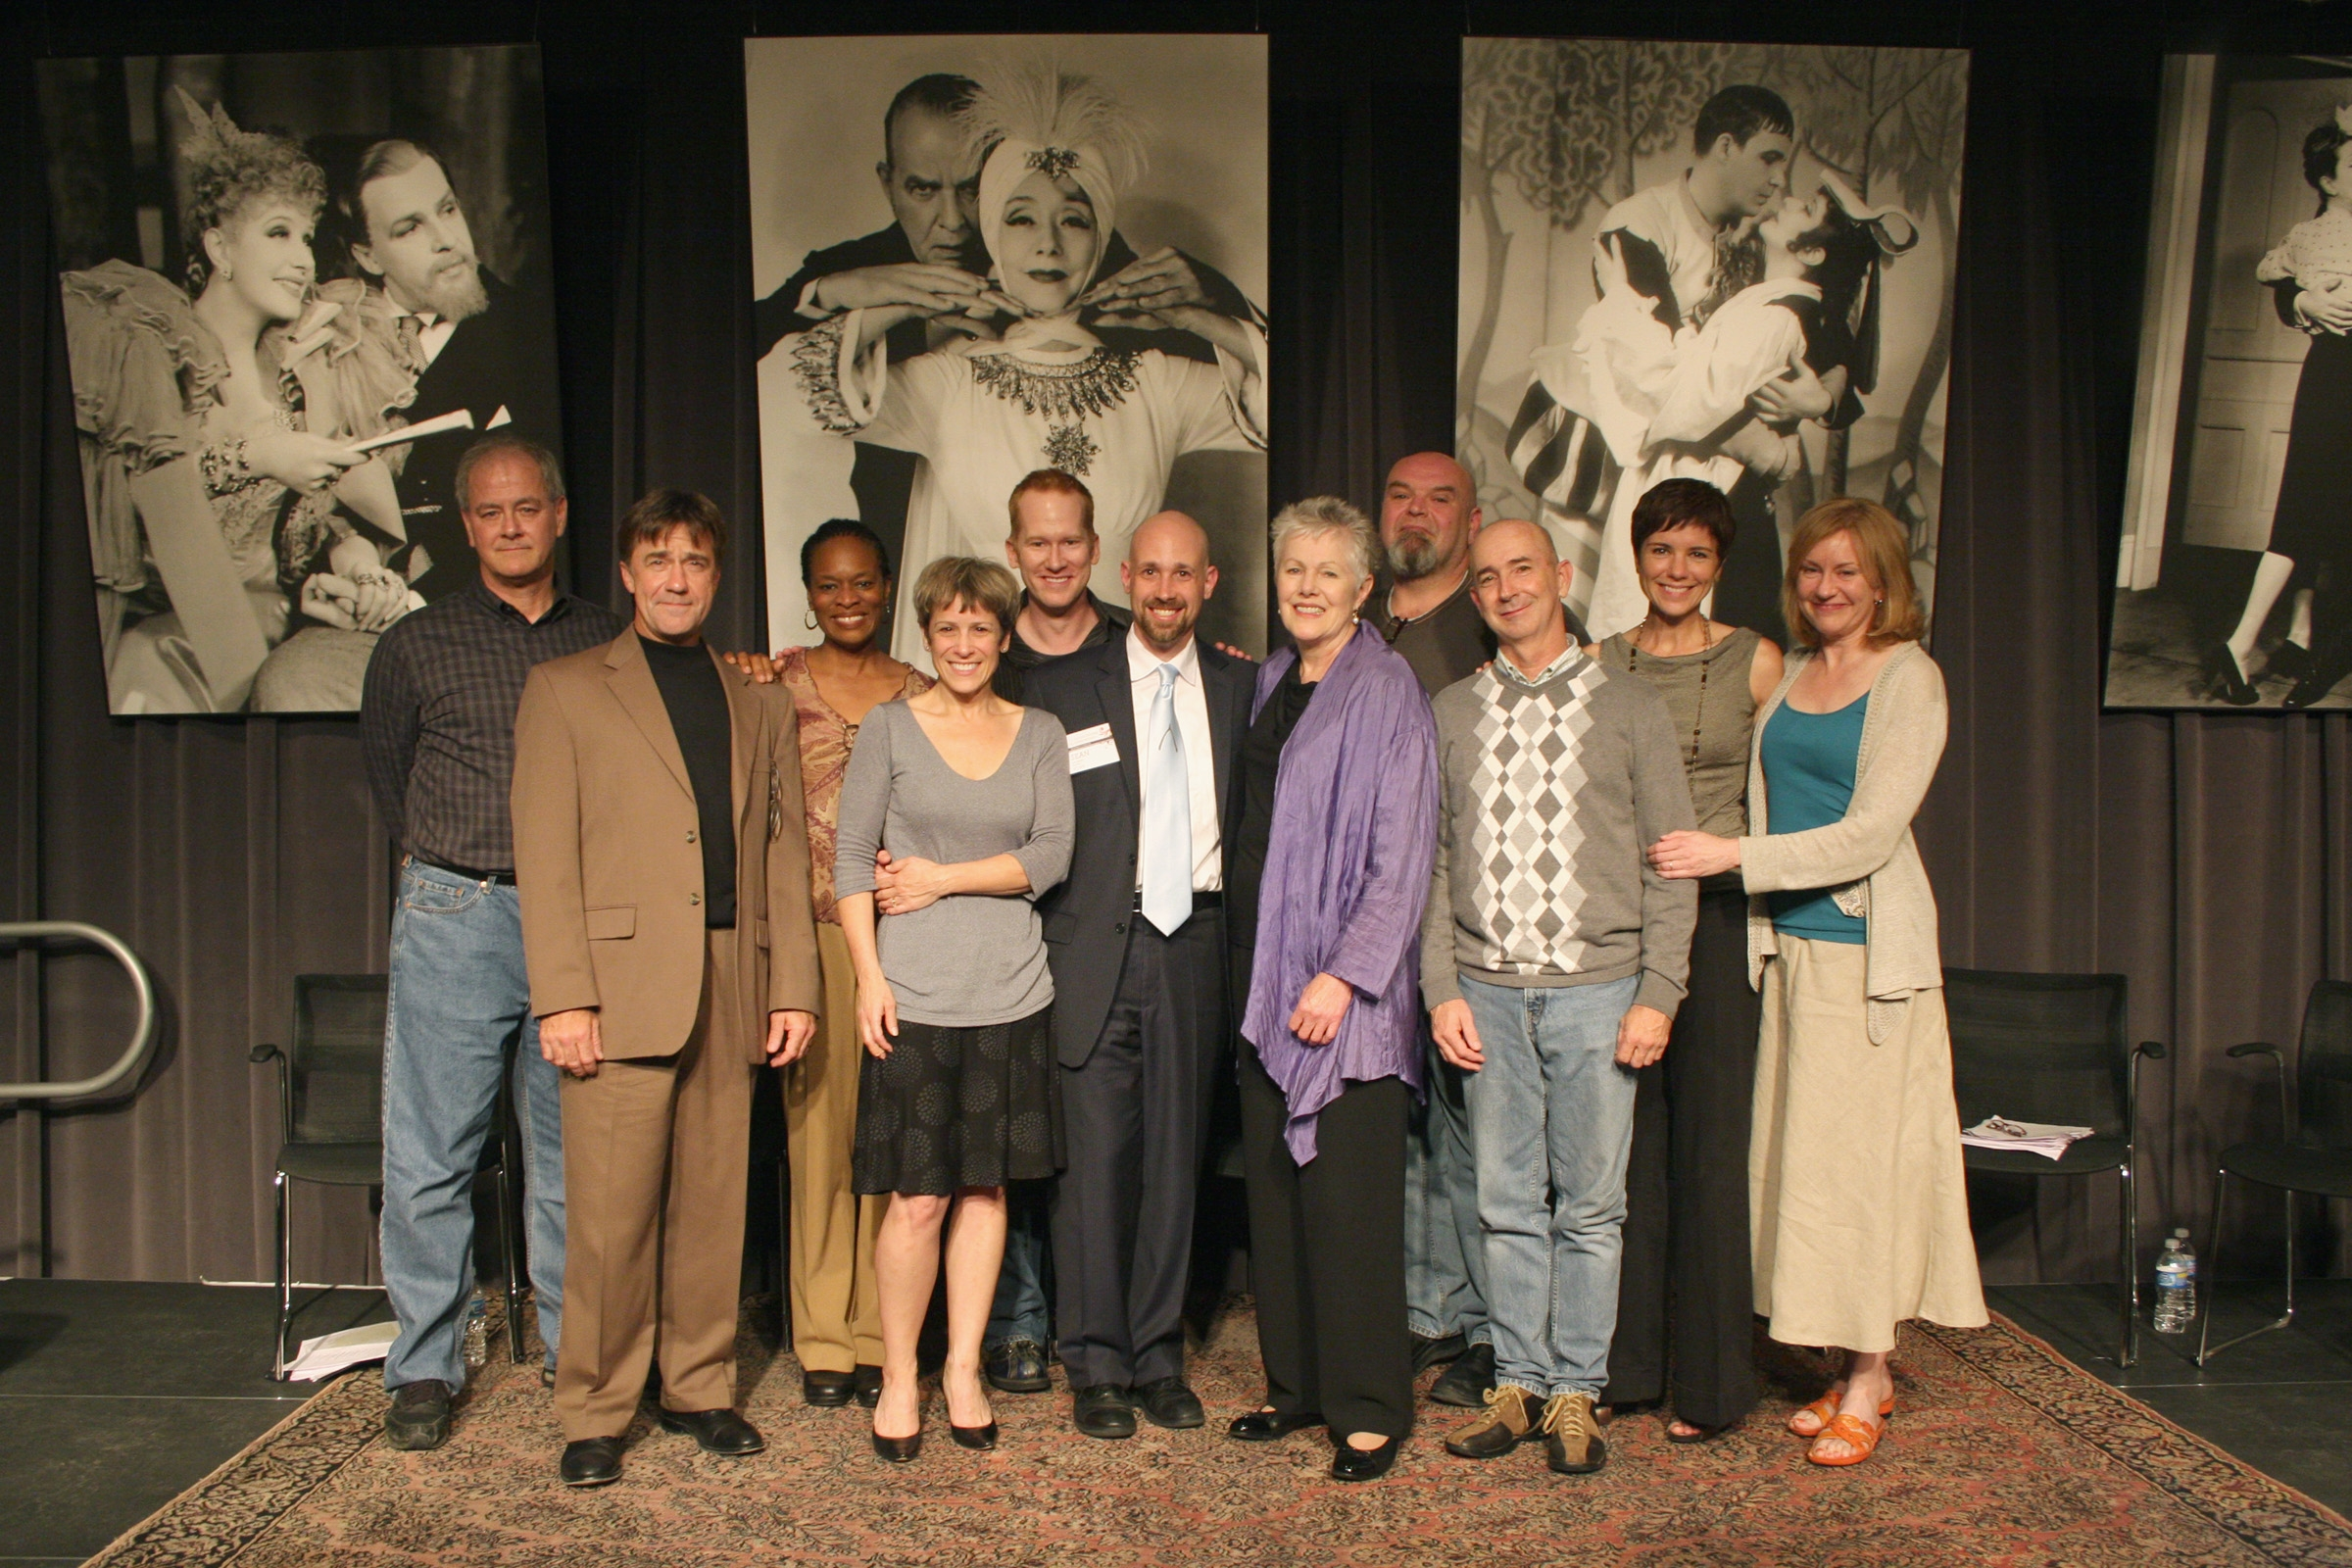 Sean with Master Teacher Lynn Redgrave and the Inaugural Class of Lunt-Fontanne Fellows, 2009